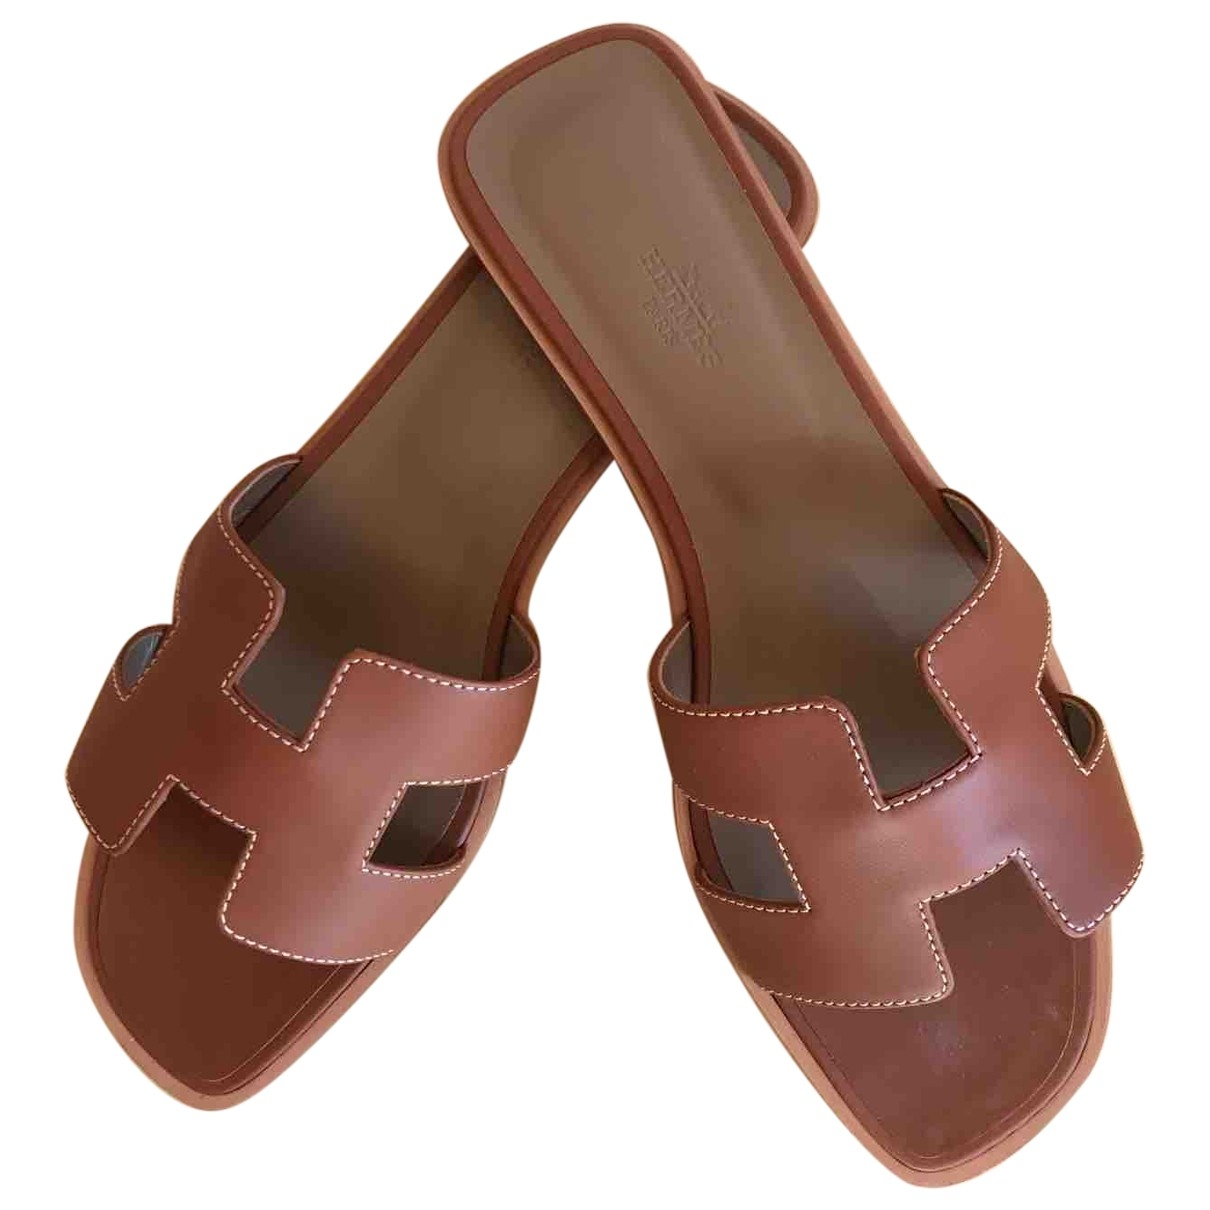 Hermès Oran Brown Leather Sandals for Women 40 EU